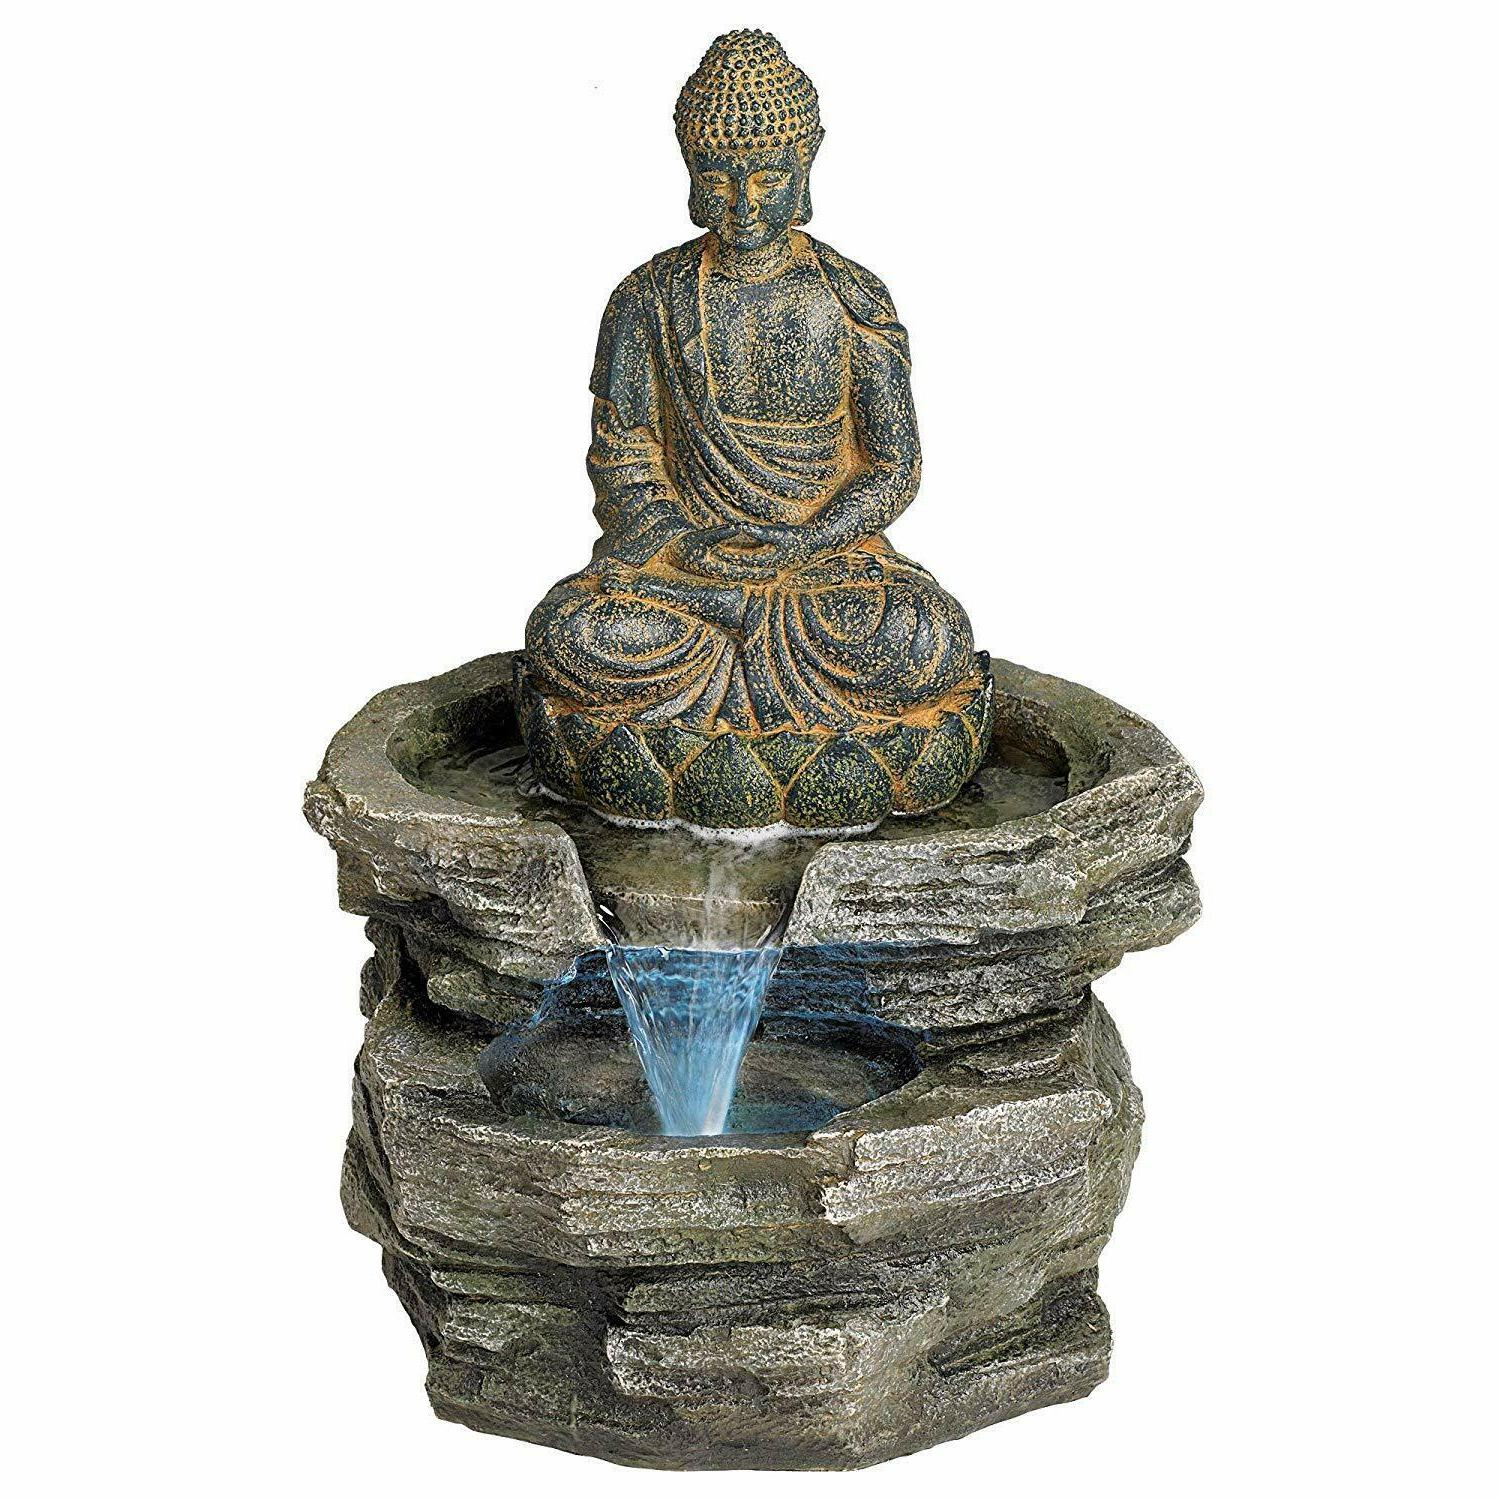 Sitting Rustic Outdoor Floor Fountain with Light LED High